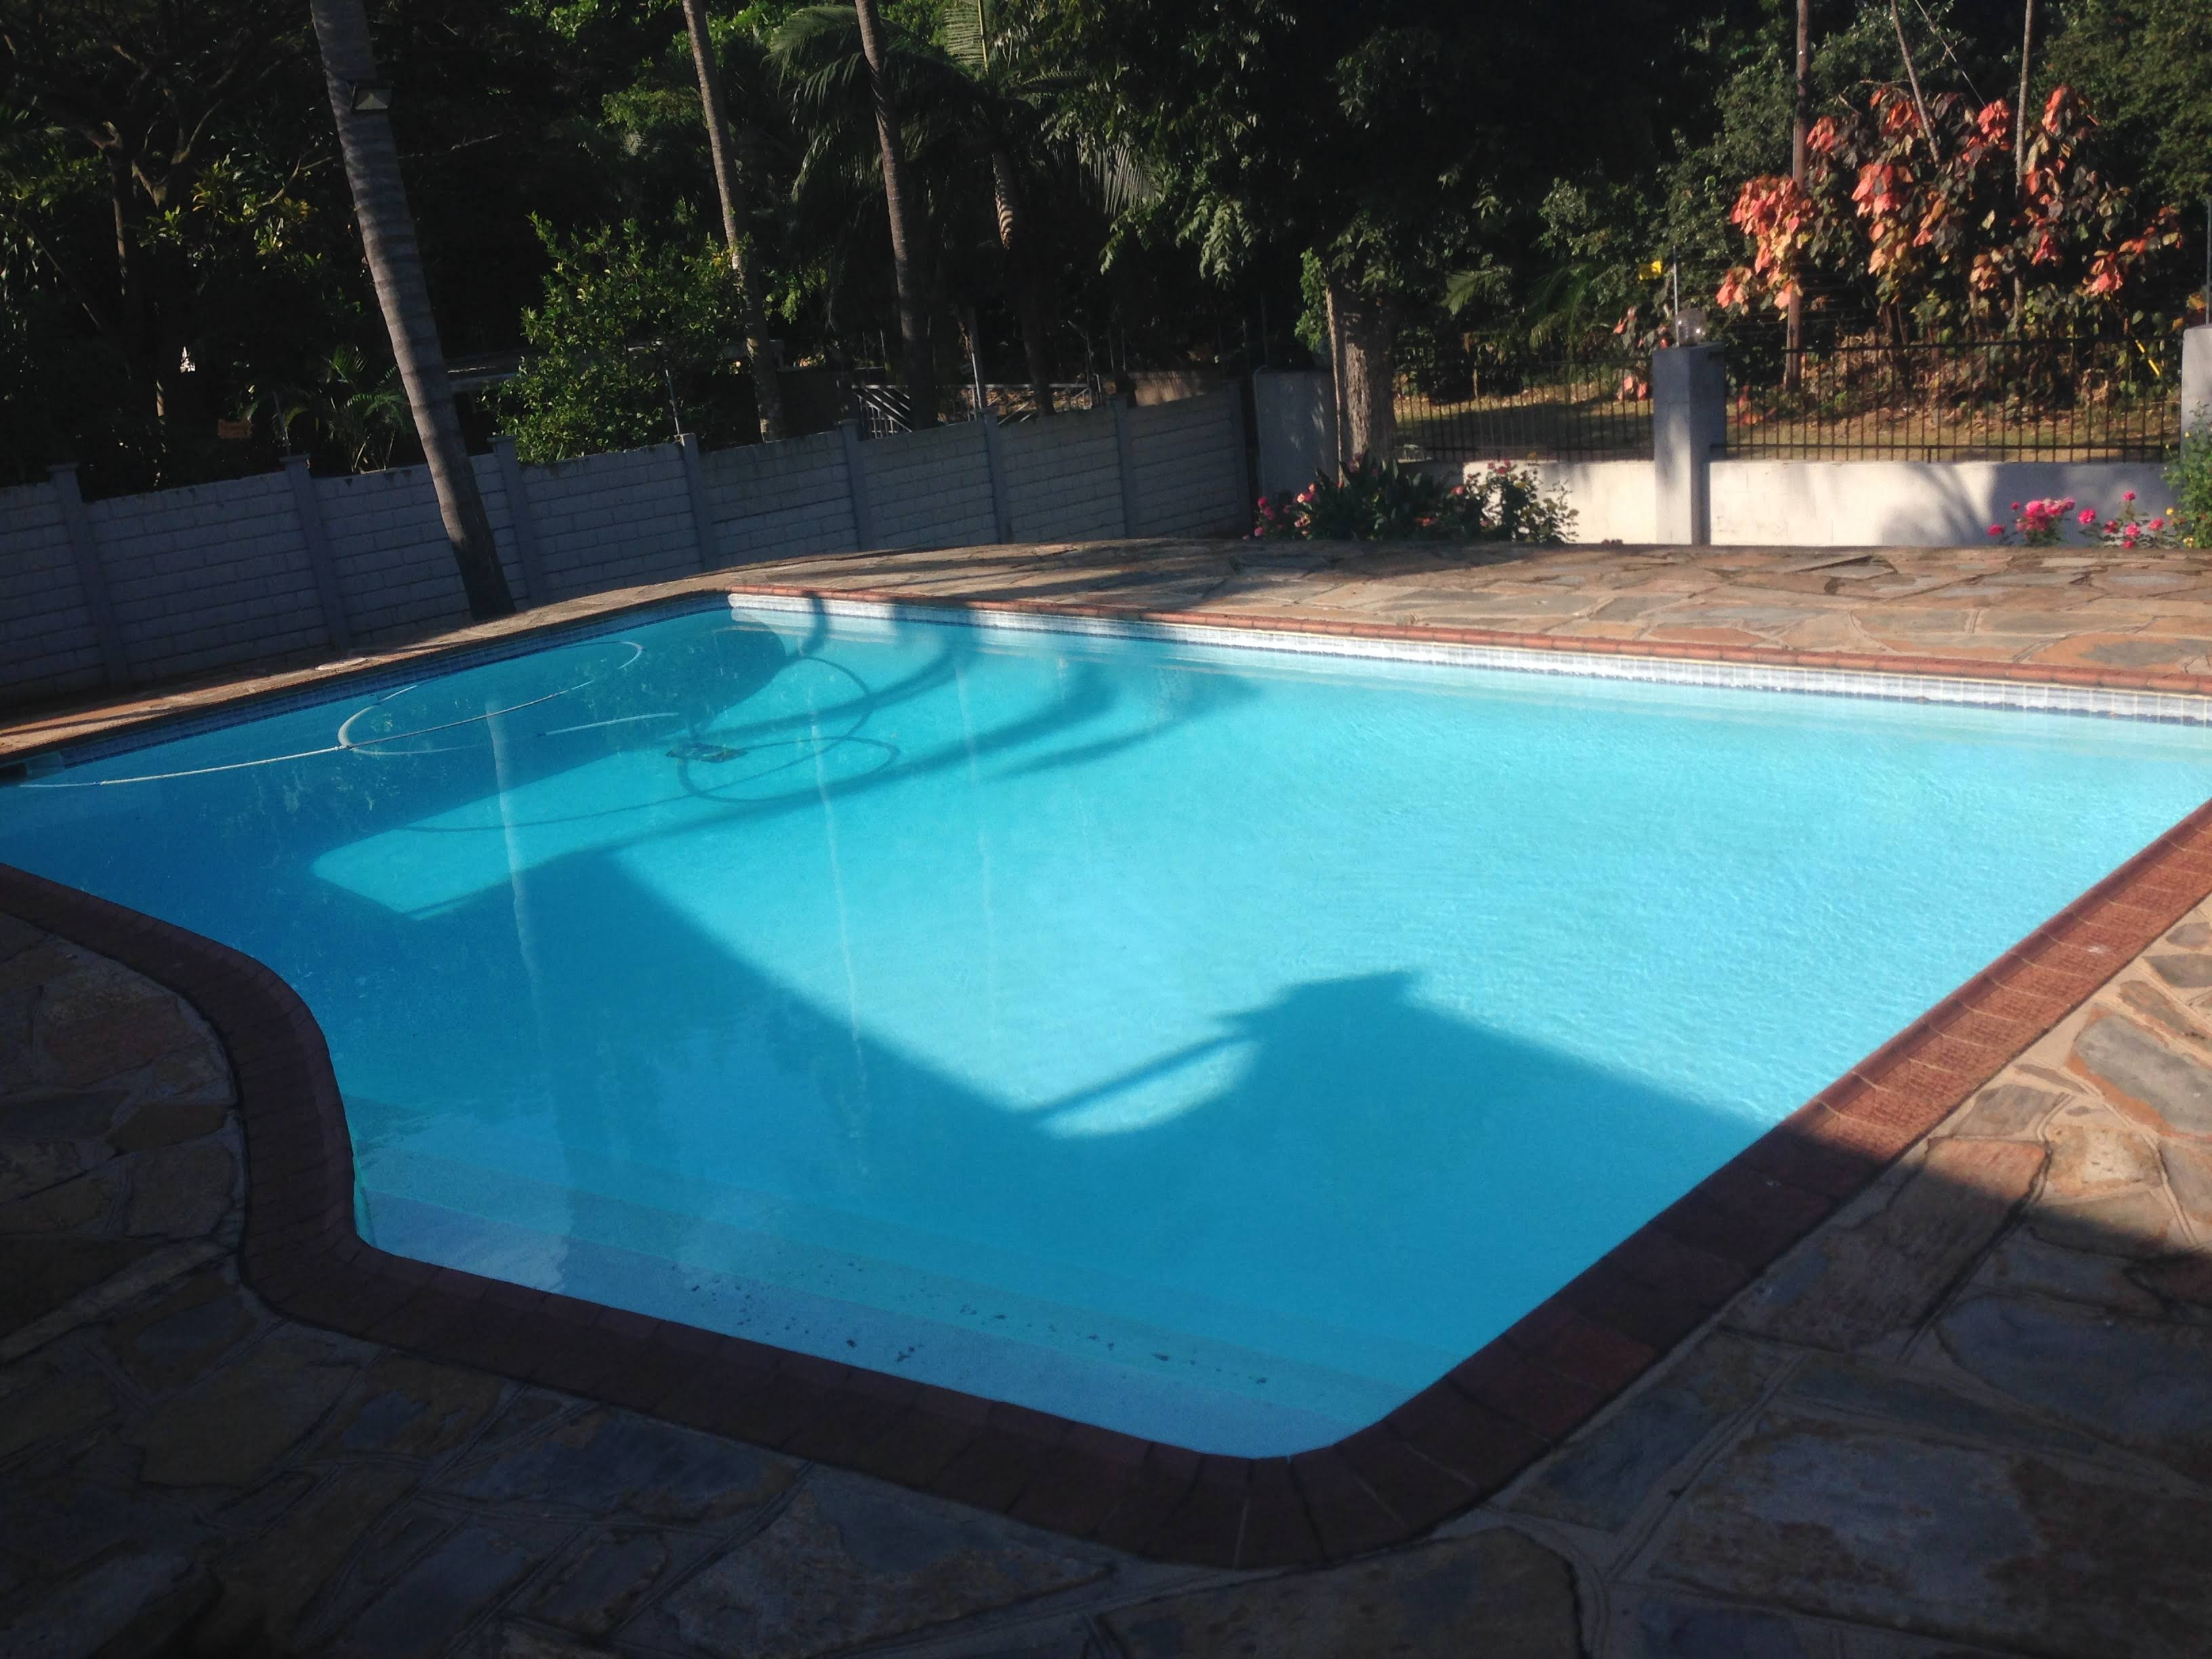 5 Steps to Prevent a Green Pool in Durban